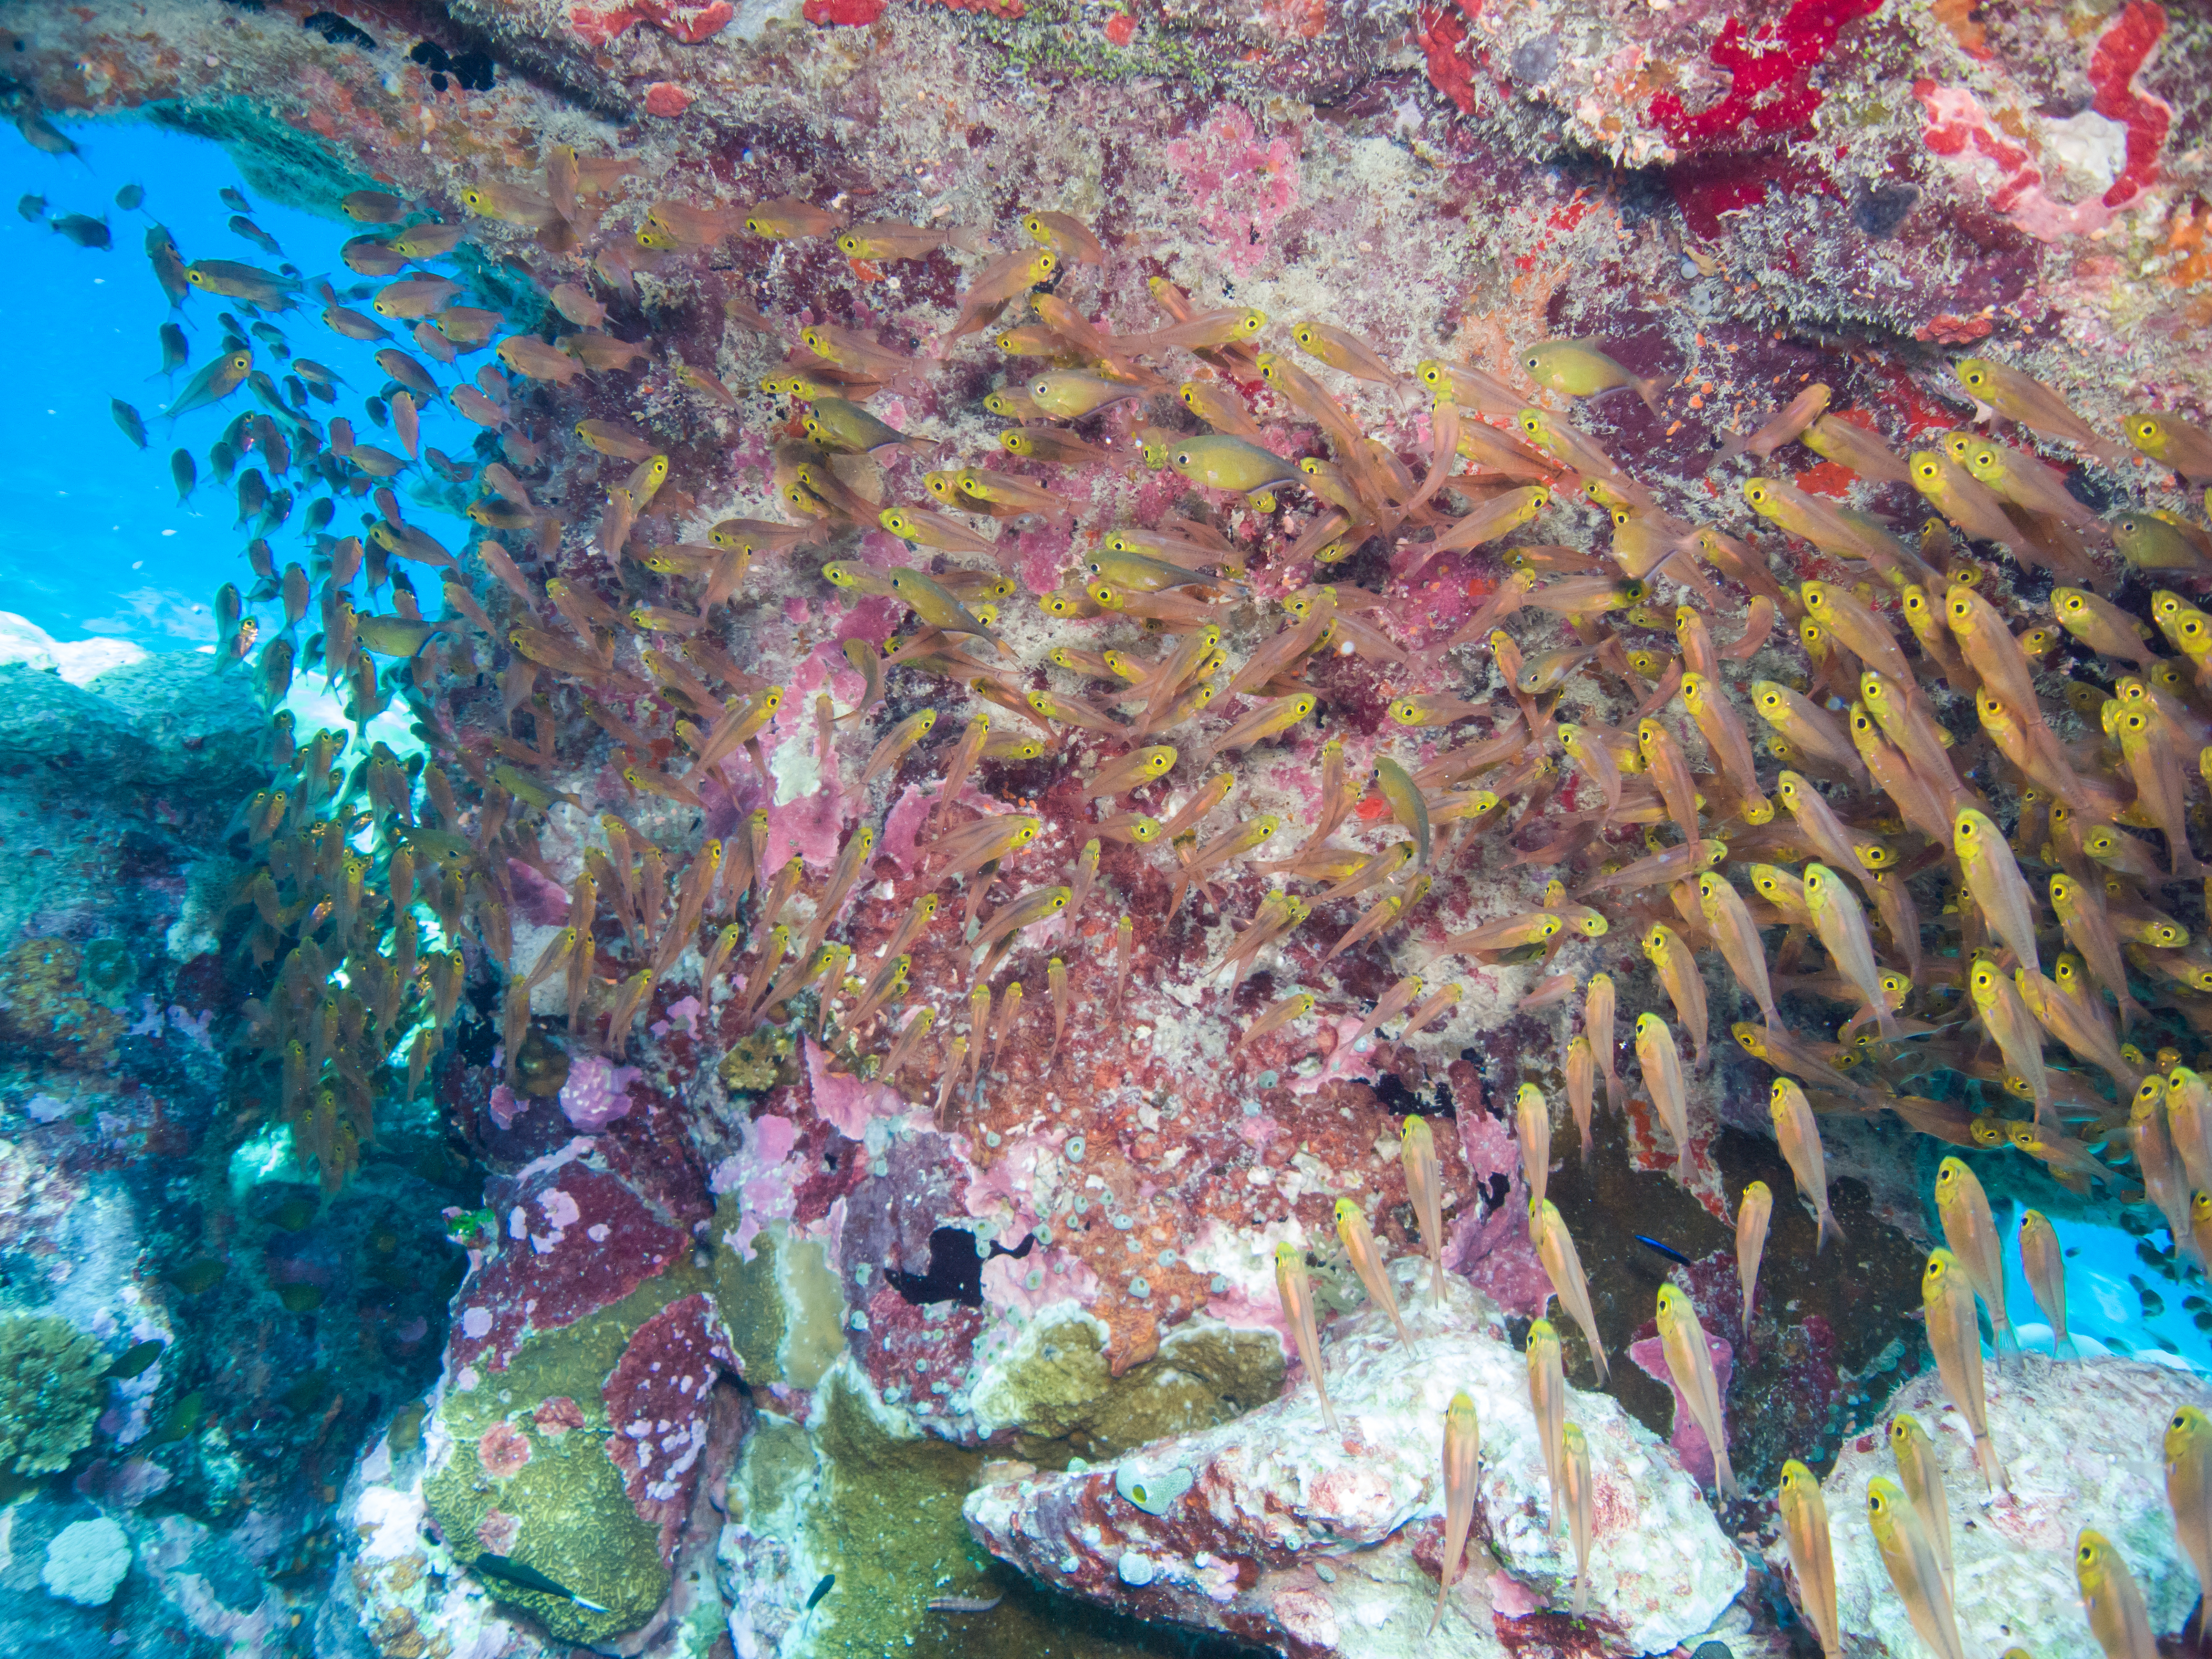 Pygmy sweepers schooling under a table coral that is covered with crustose algae at a reef in Chagos Marine Reserve.